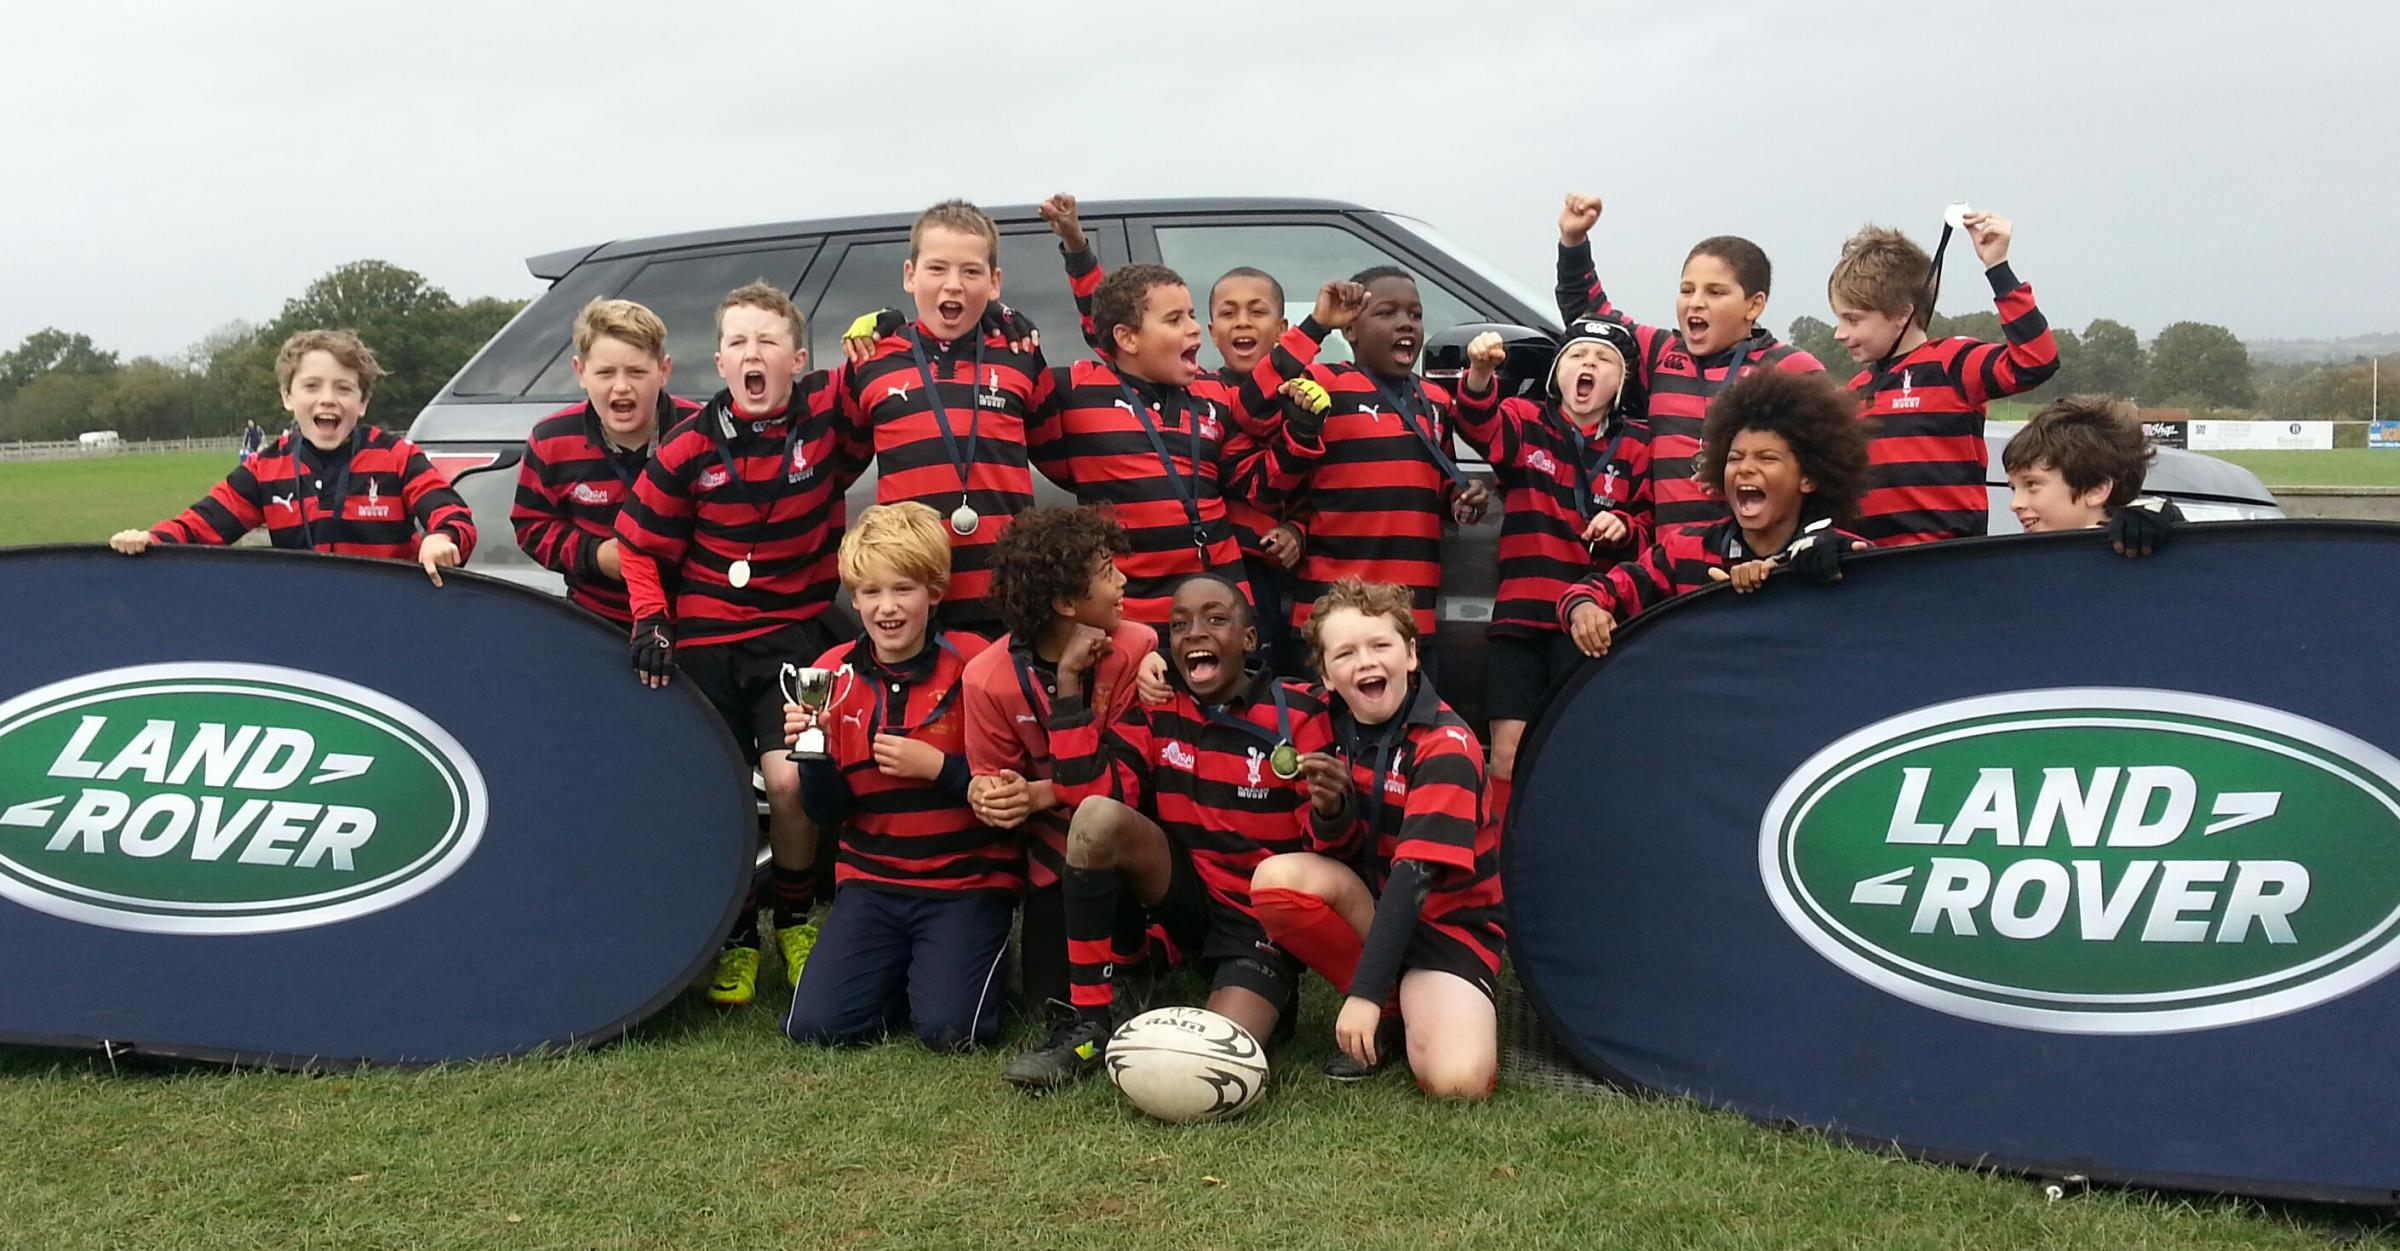 The Blackheath U11s